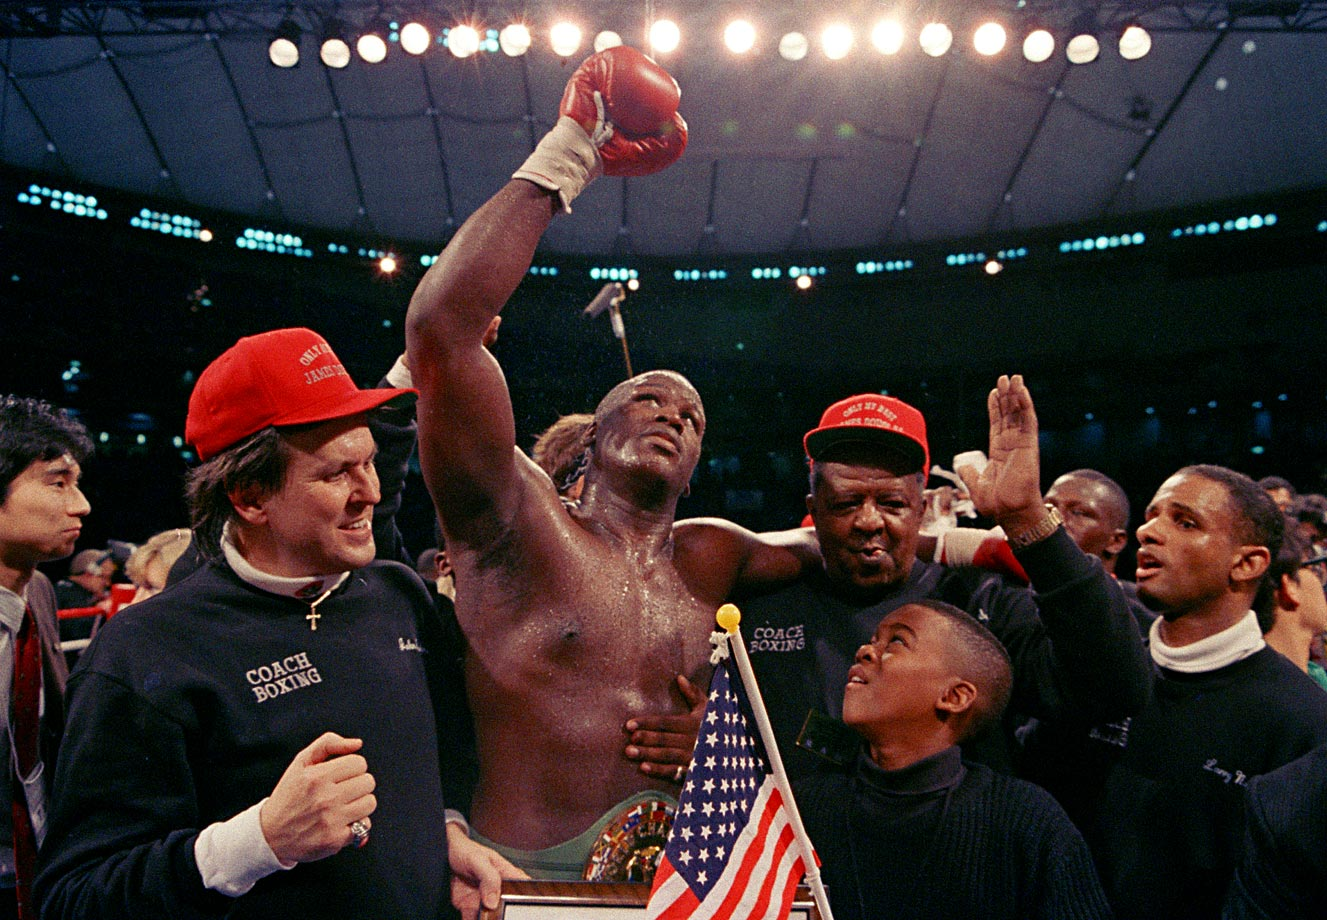 Not the same as the old boss. With his manager, John Johnson, beside him, Douglas—the pride of Columbus, Ohio, and the new heavyweight champion of the world—waved in joy, and perhaps disbelief, to the cheering crowd.